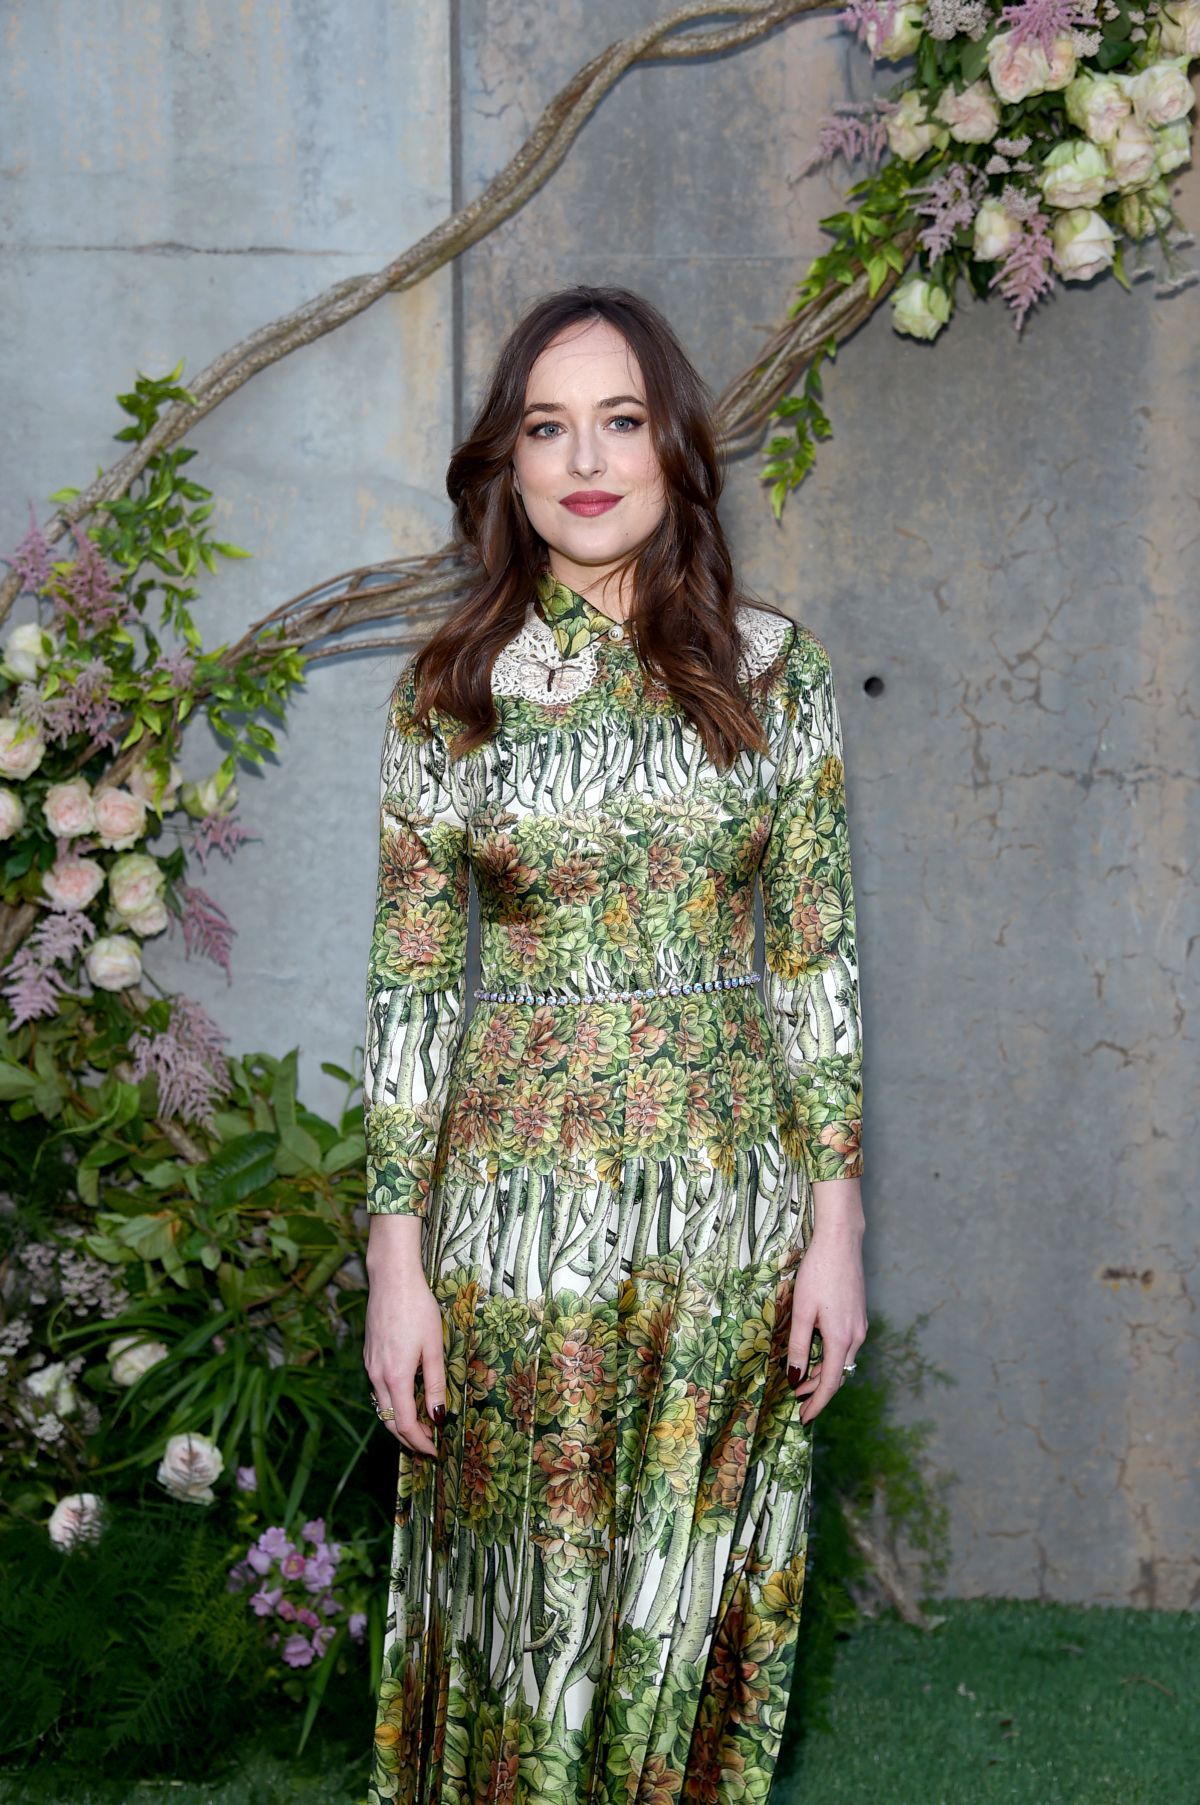 NEW YORK, NY - MAY 02: Dakota Johnson attends the Gucci Bloom, Fragrance Launch Event at MoMA PS.1 on May 2, 2017 in New York City. (Photo by Jamie McCarthy/Getty Images for Gucci)